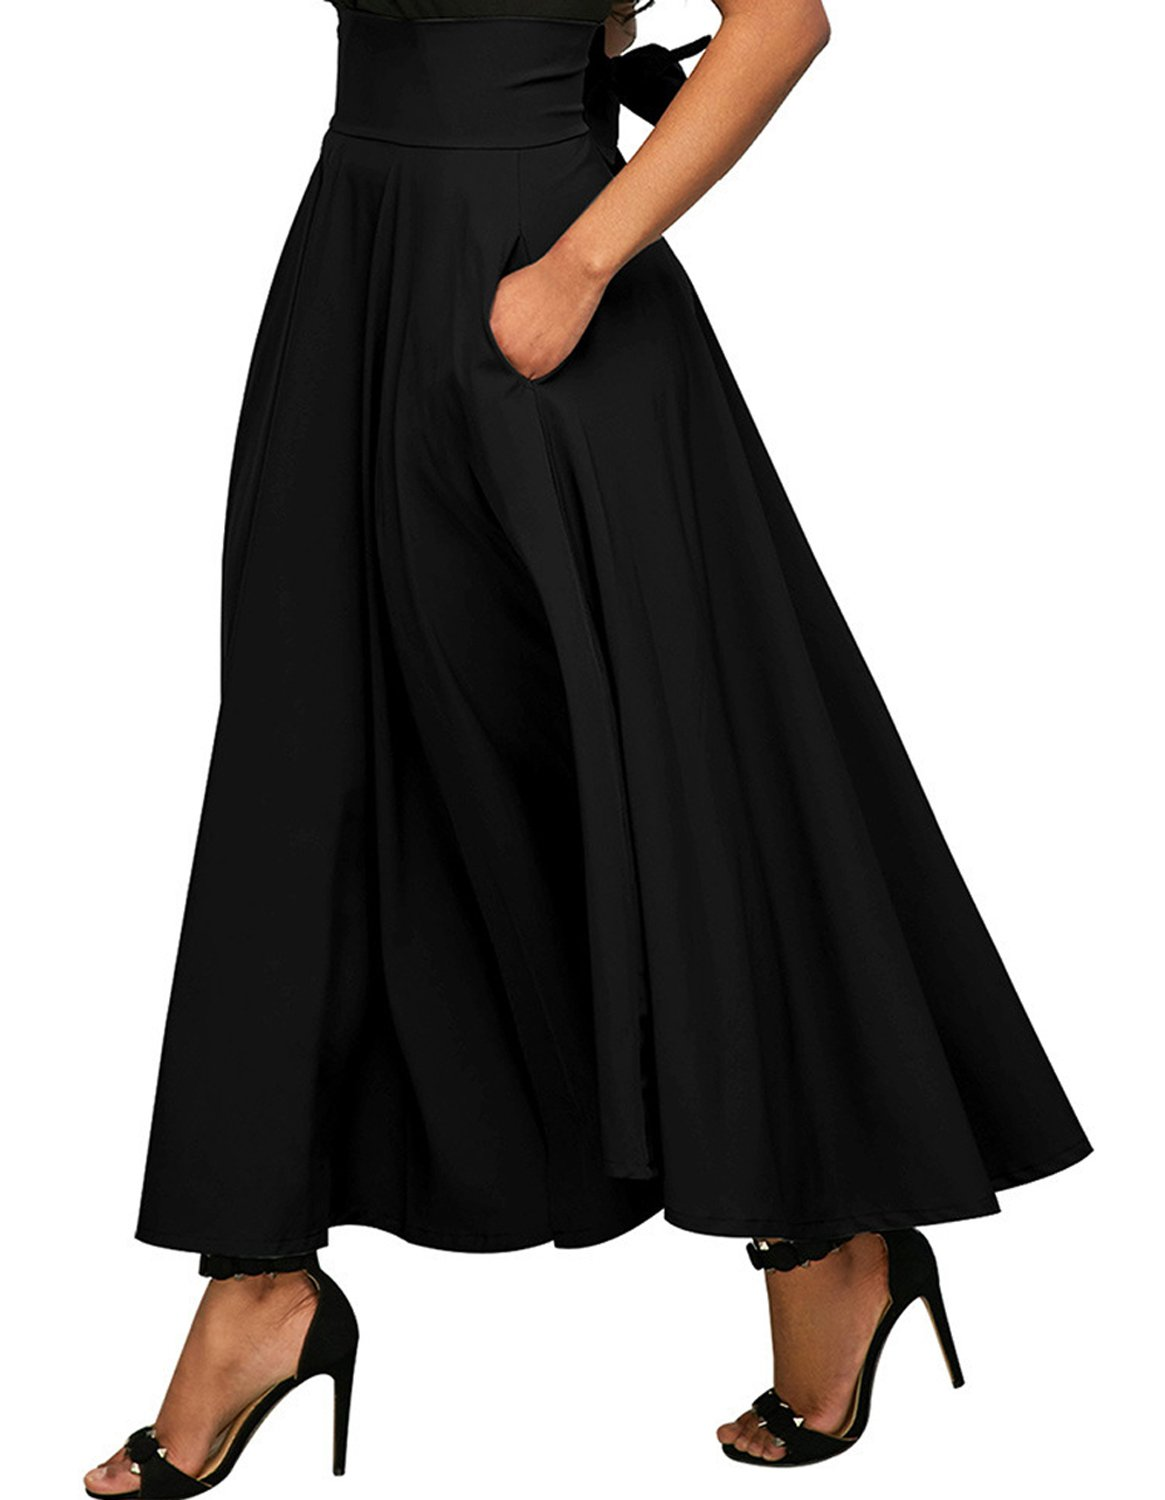 Kimikal Gothic Steampunk Long Sateen Corset Skirt 4